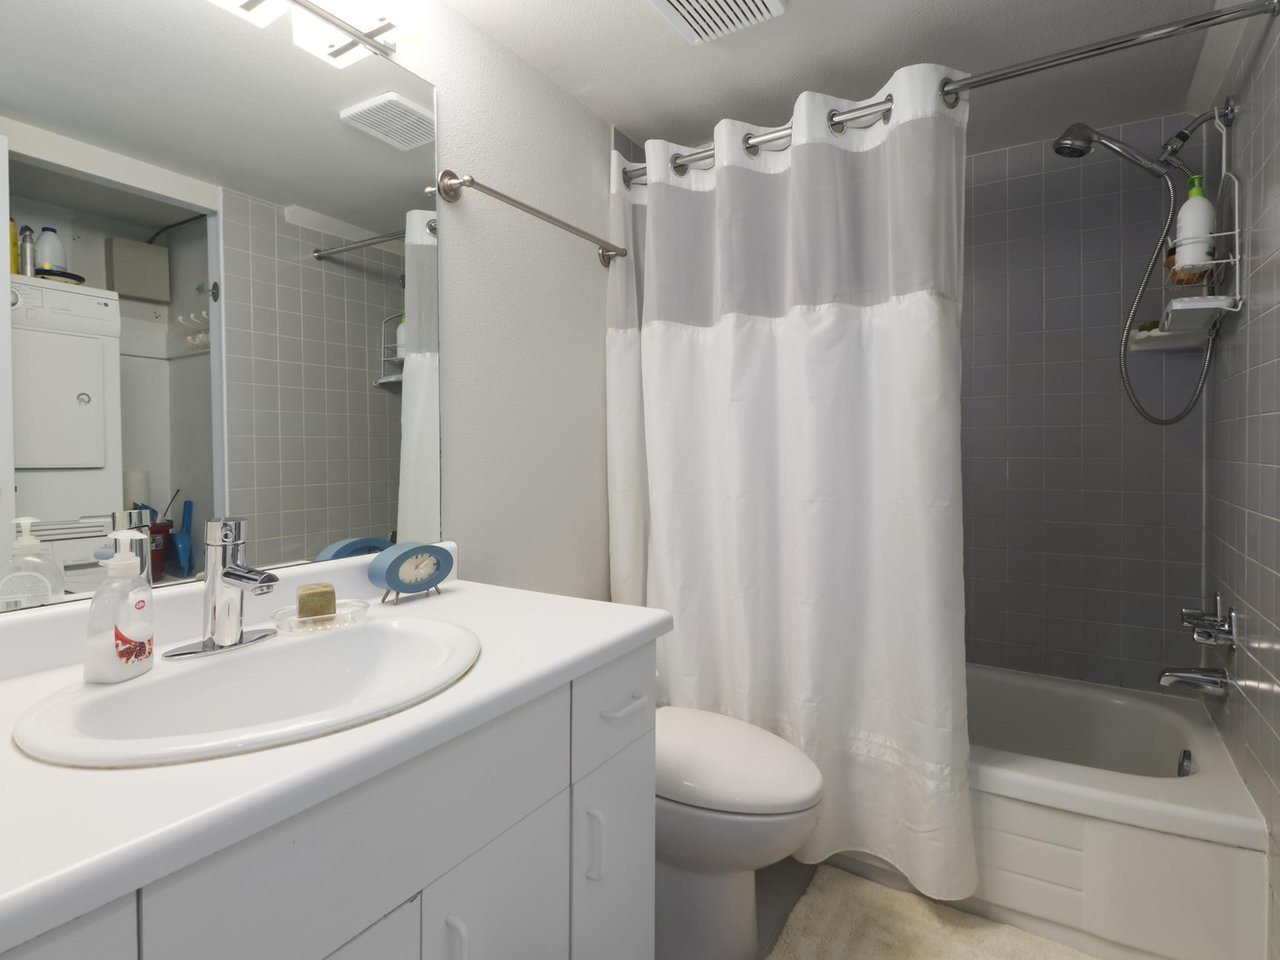 """Photo 14: Photos: 103 1943 E 1ST Avenue in Vancouver: Grandview Woodland Townhouse for sale in """"THE VAULT"""" (Vancouver East)  : MLS®# R2465391"""